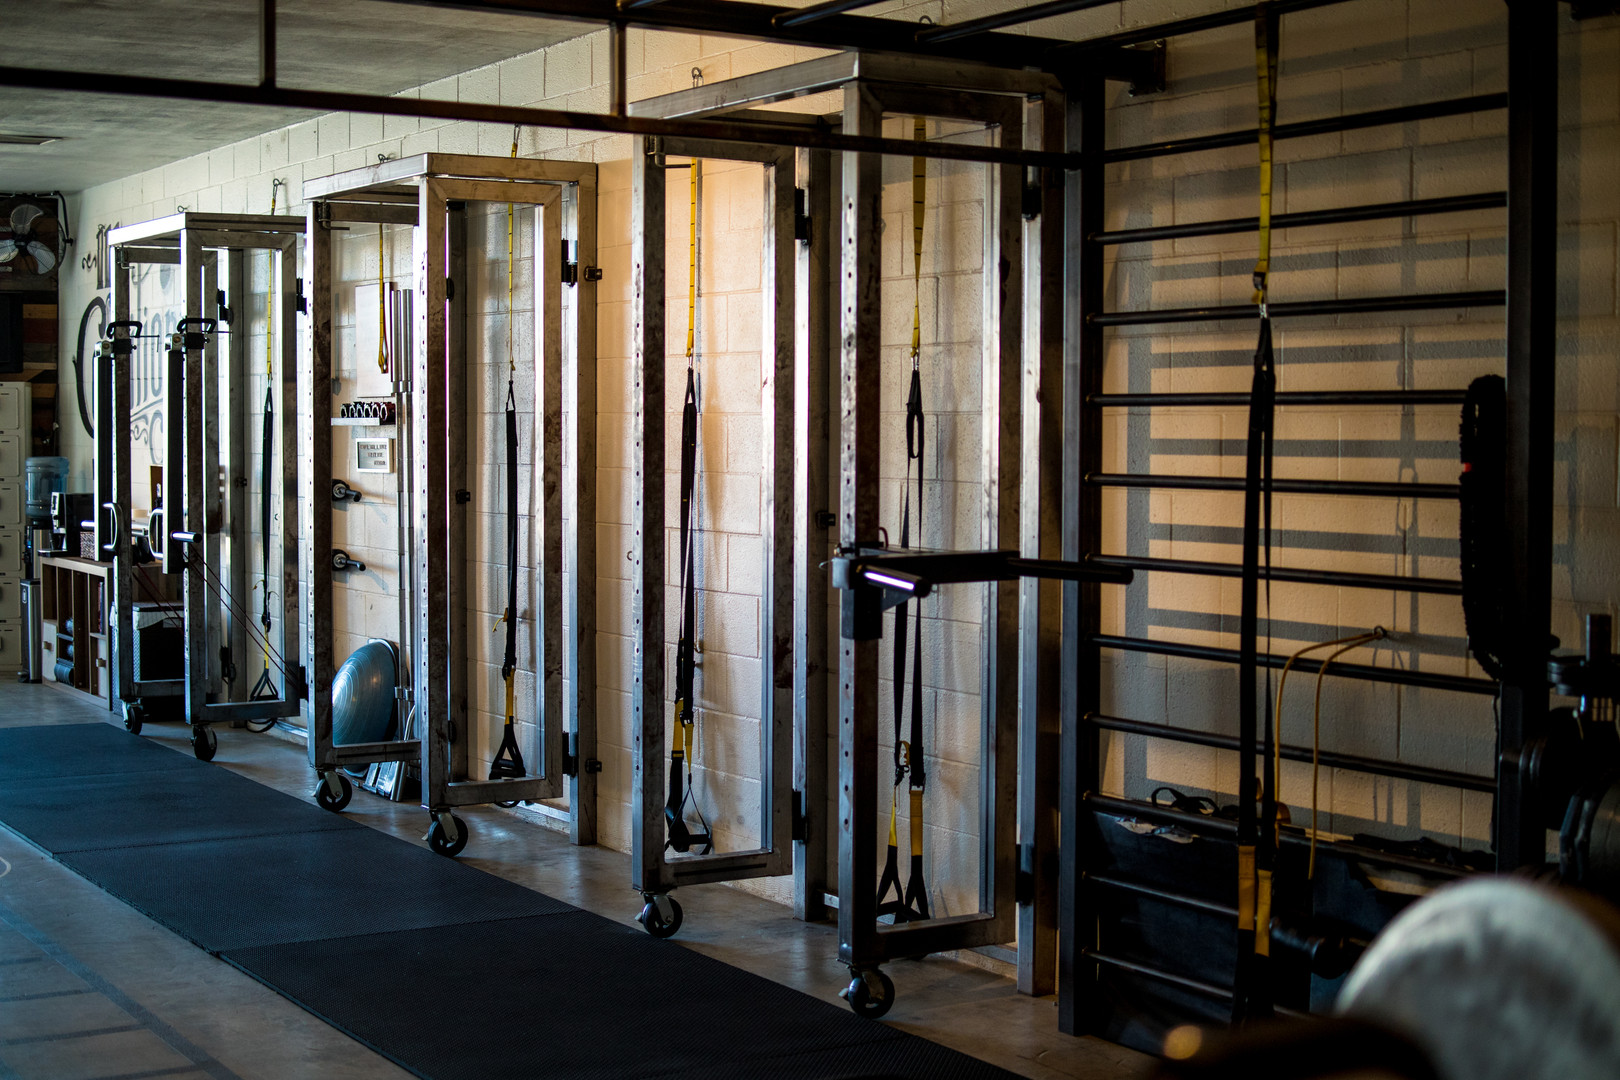 111 weight room 2.jpg